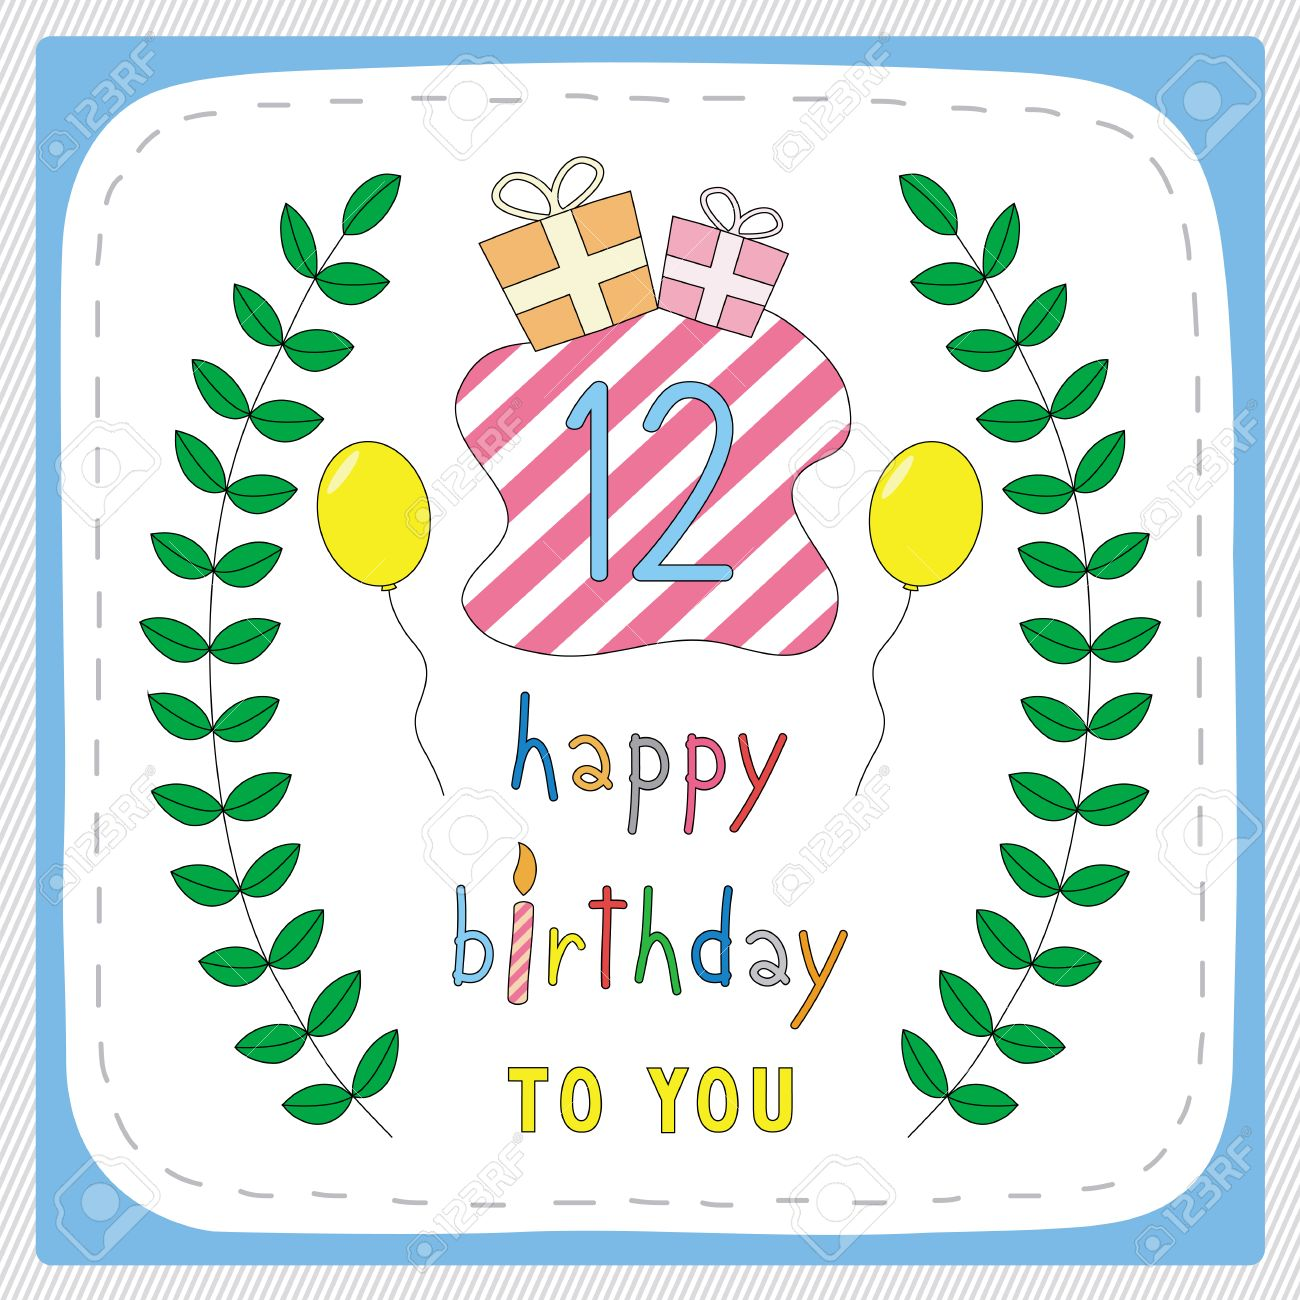 Happy Birthday Card With 12th Birthday And For 12 Years – 12th Birthday Cards